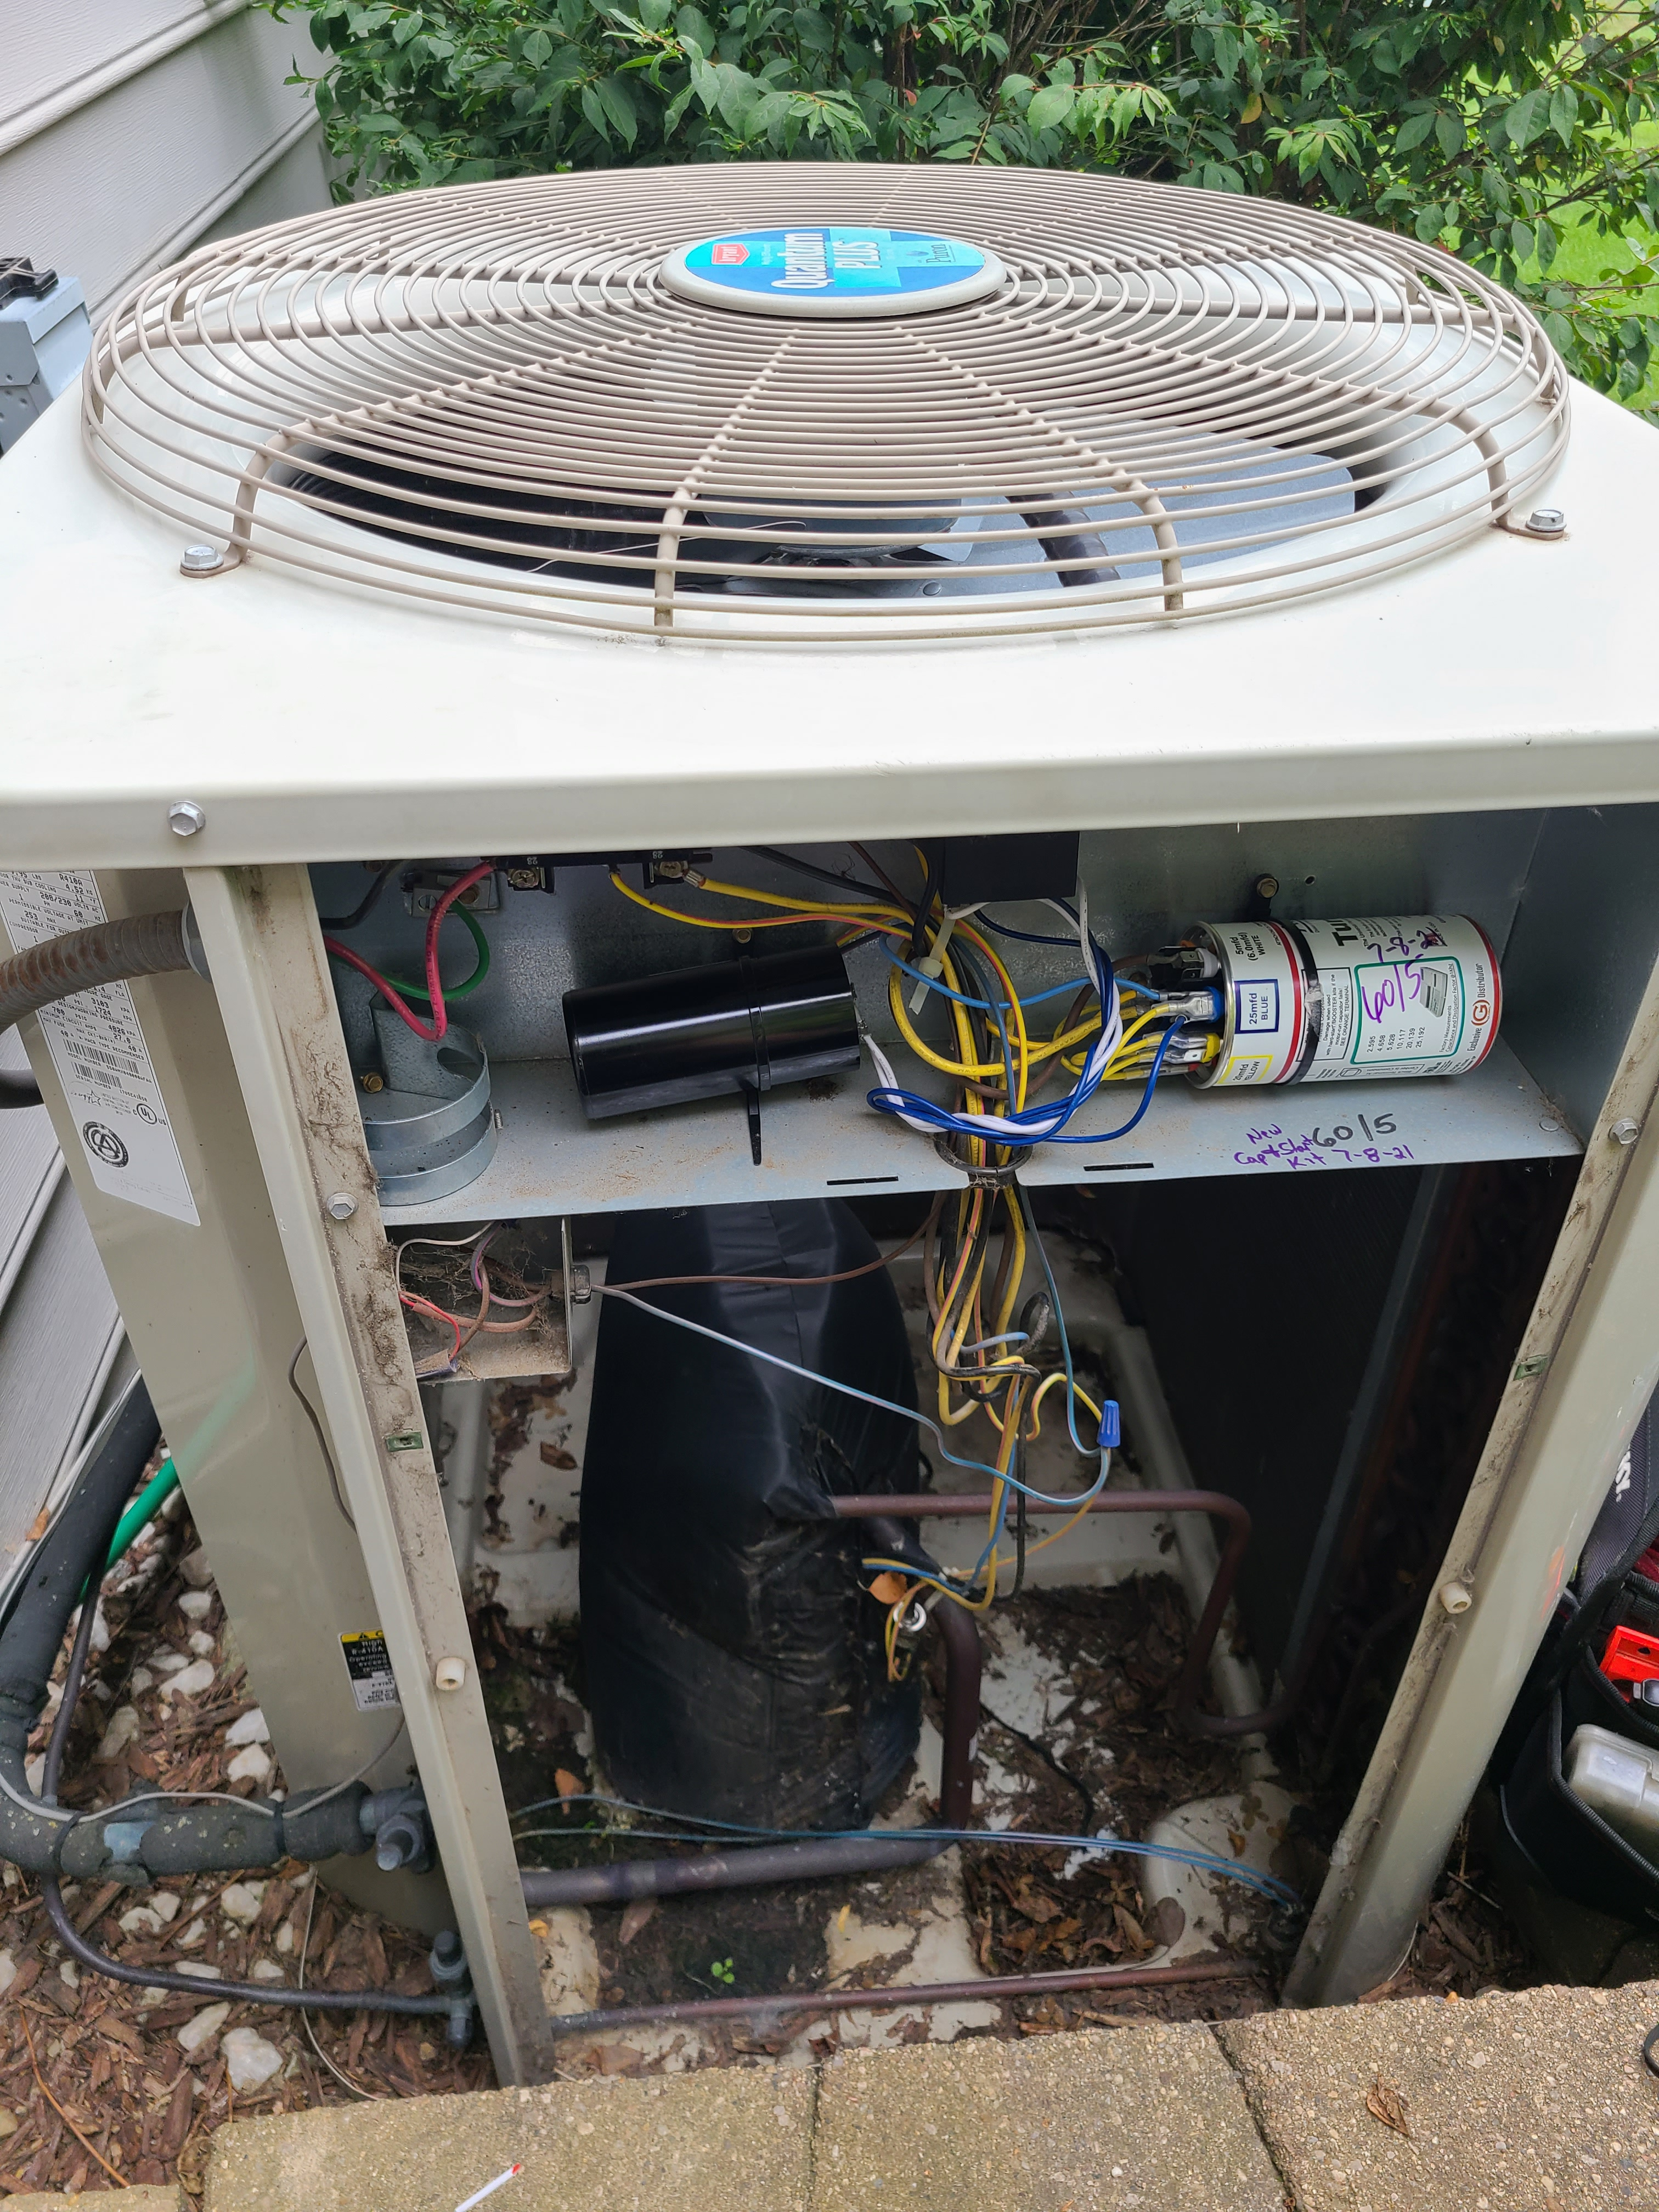 Carrier ac no cooling. Circuit breaker tripping. Issue diagnosed and repaired.